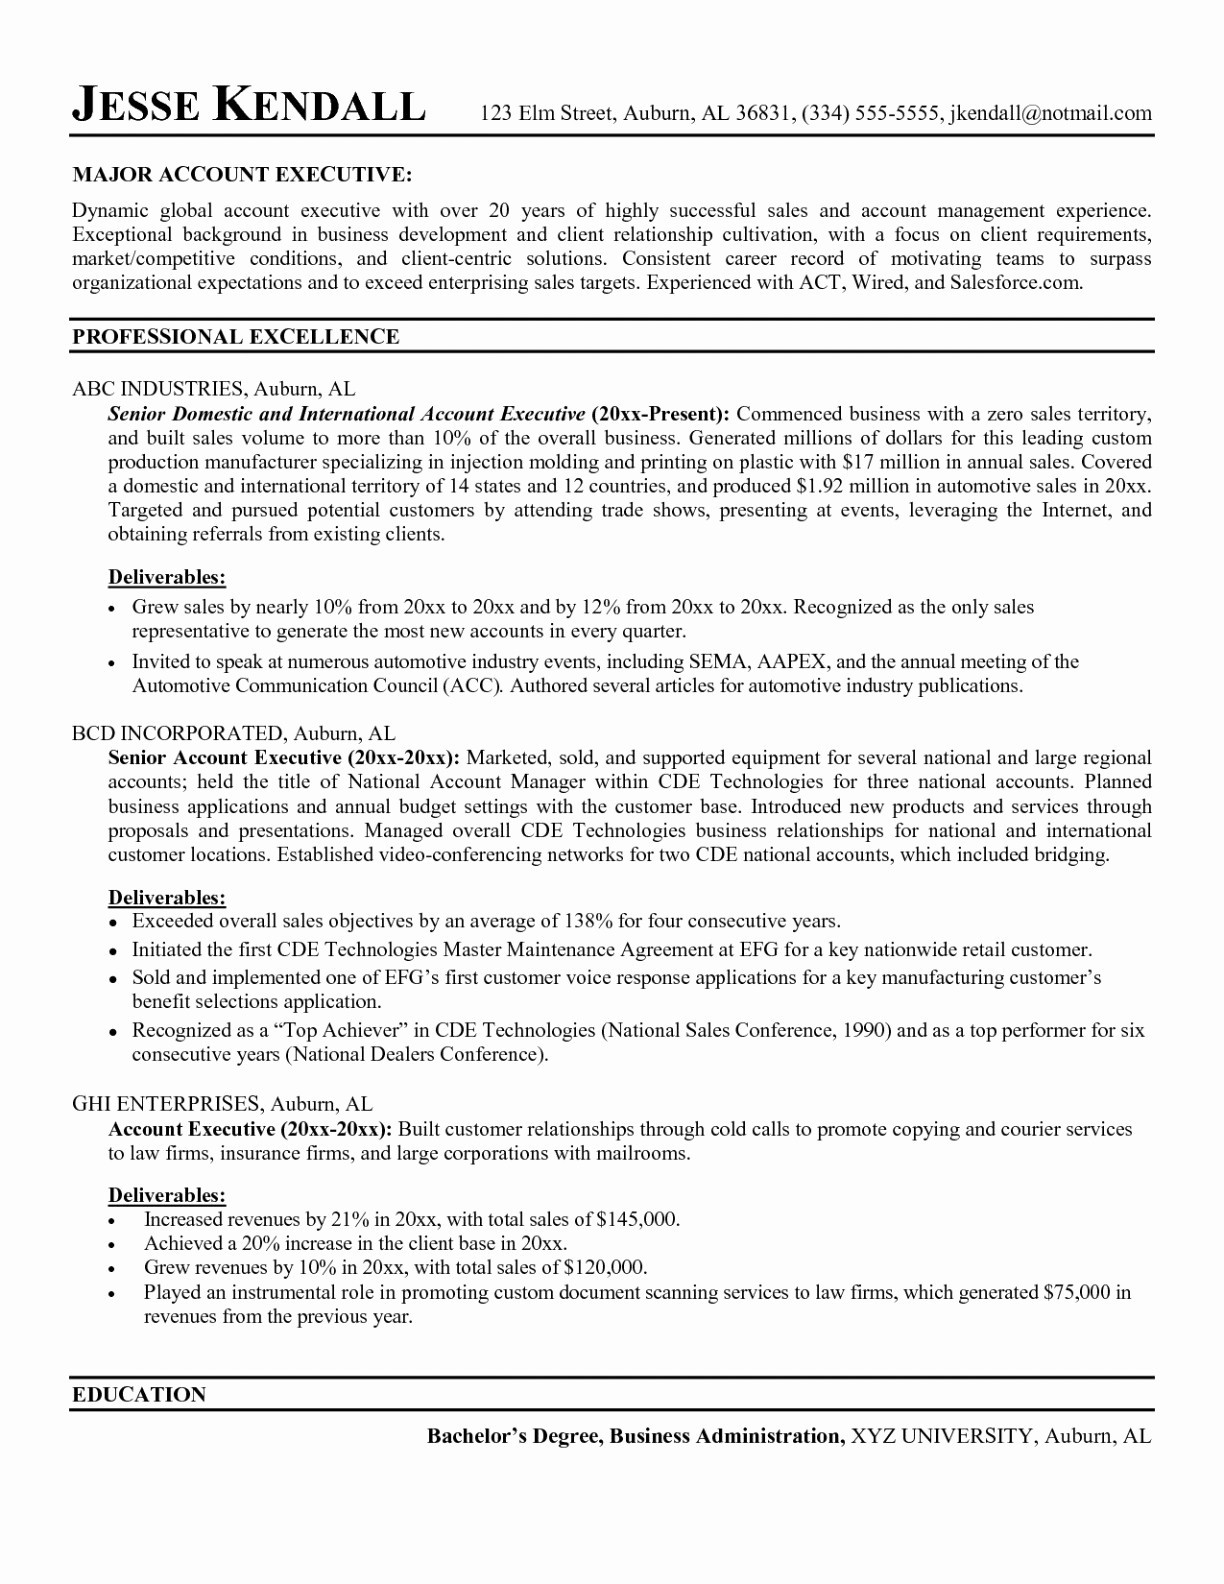 Business Case For Promotion Template New Manager Resume From With Business Case One Page Template